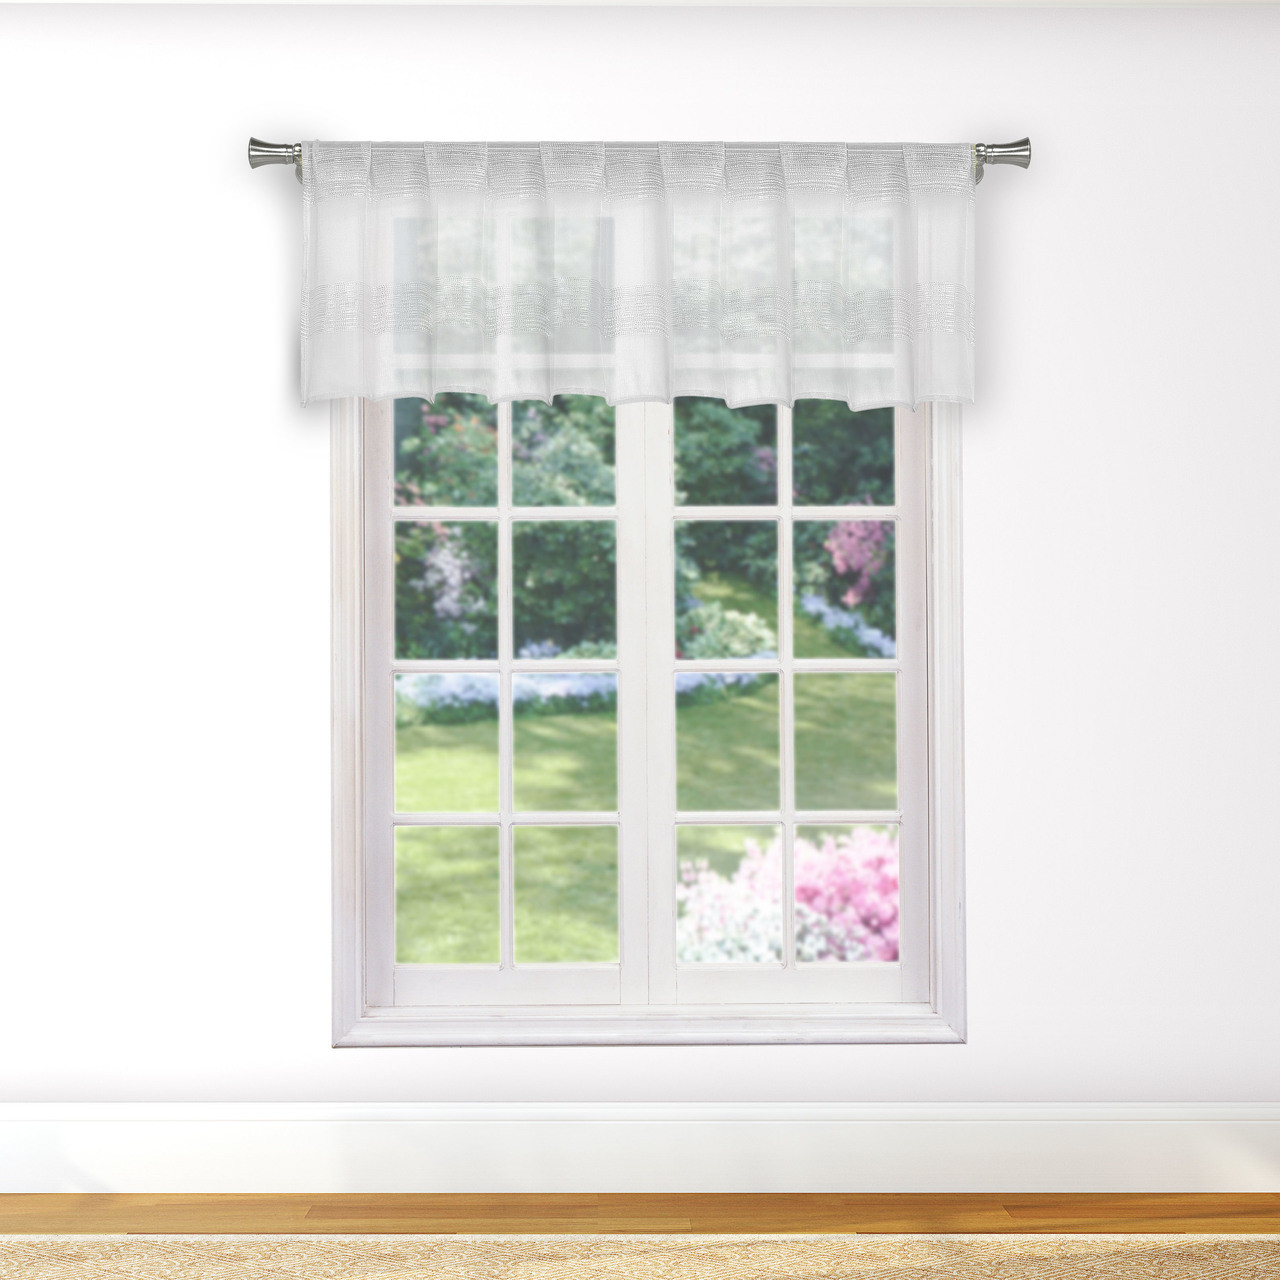 Bathroom And More Collection Pure White Sheer Window Curtain Valance With Stripe Design Single 1 Valance 56in W X 15in L My Infinity Store